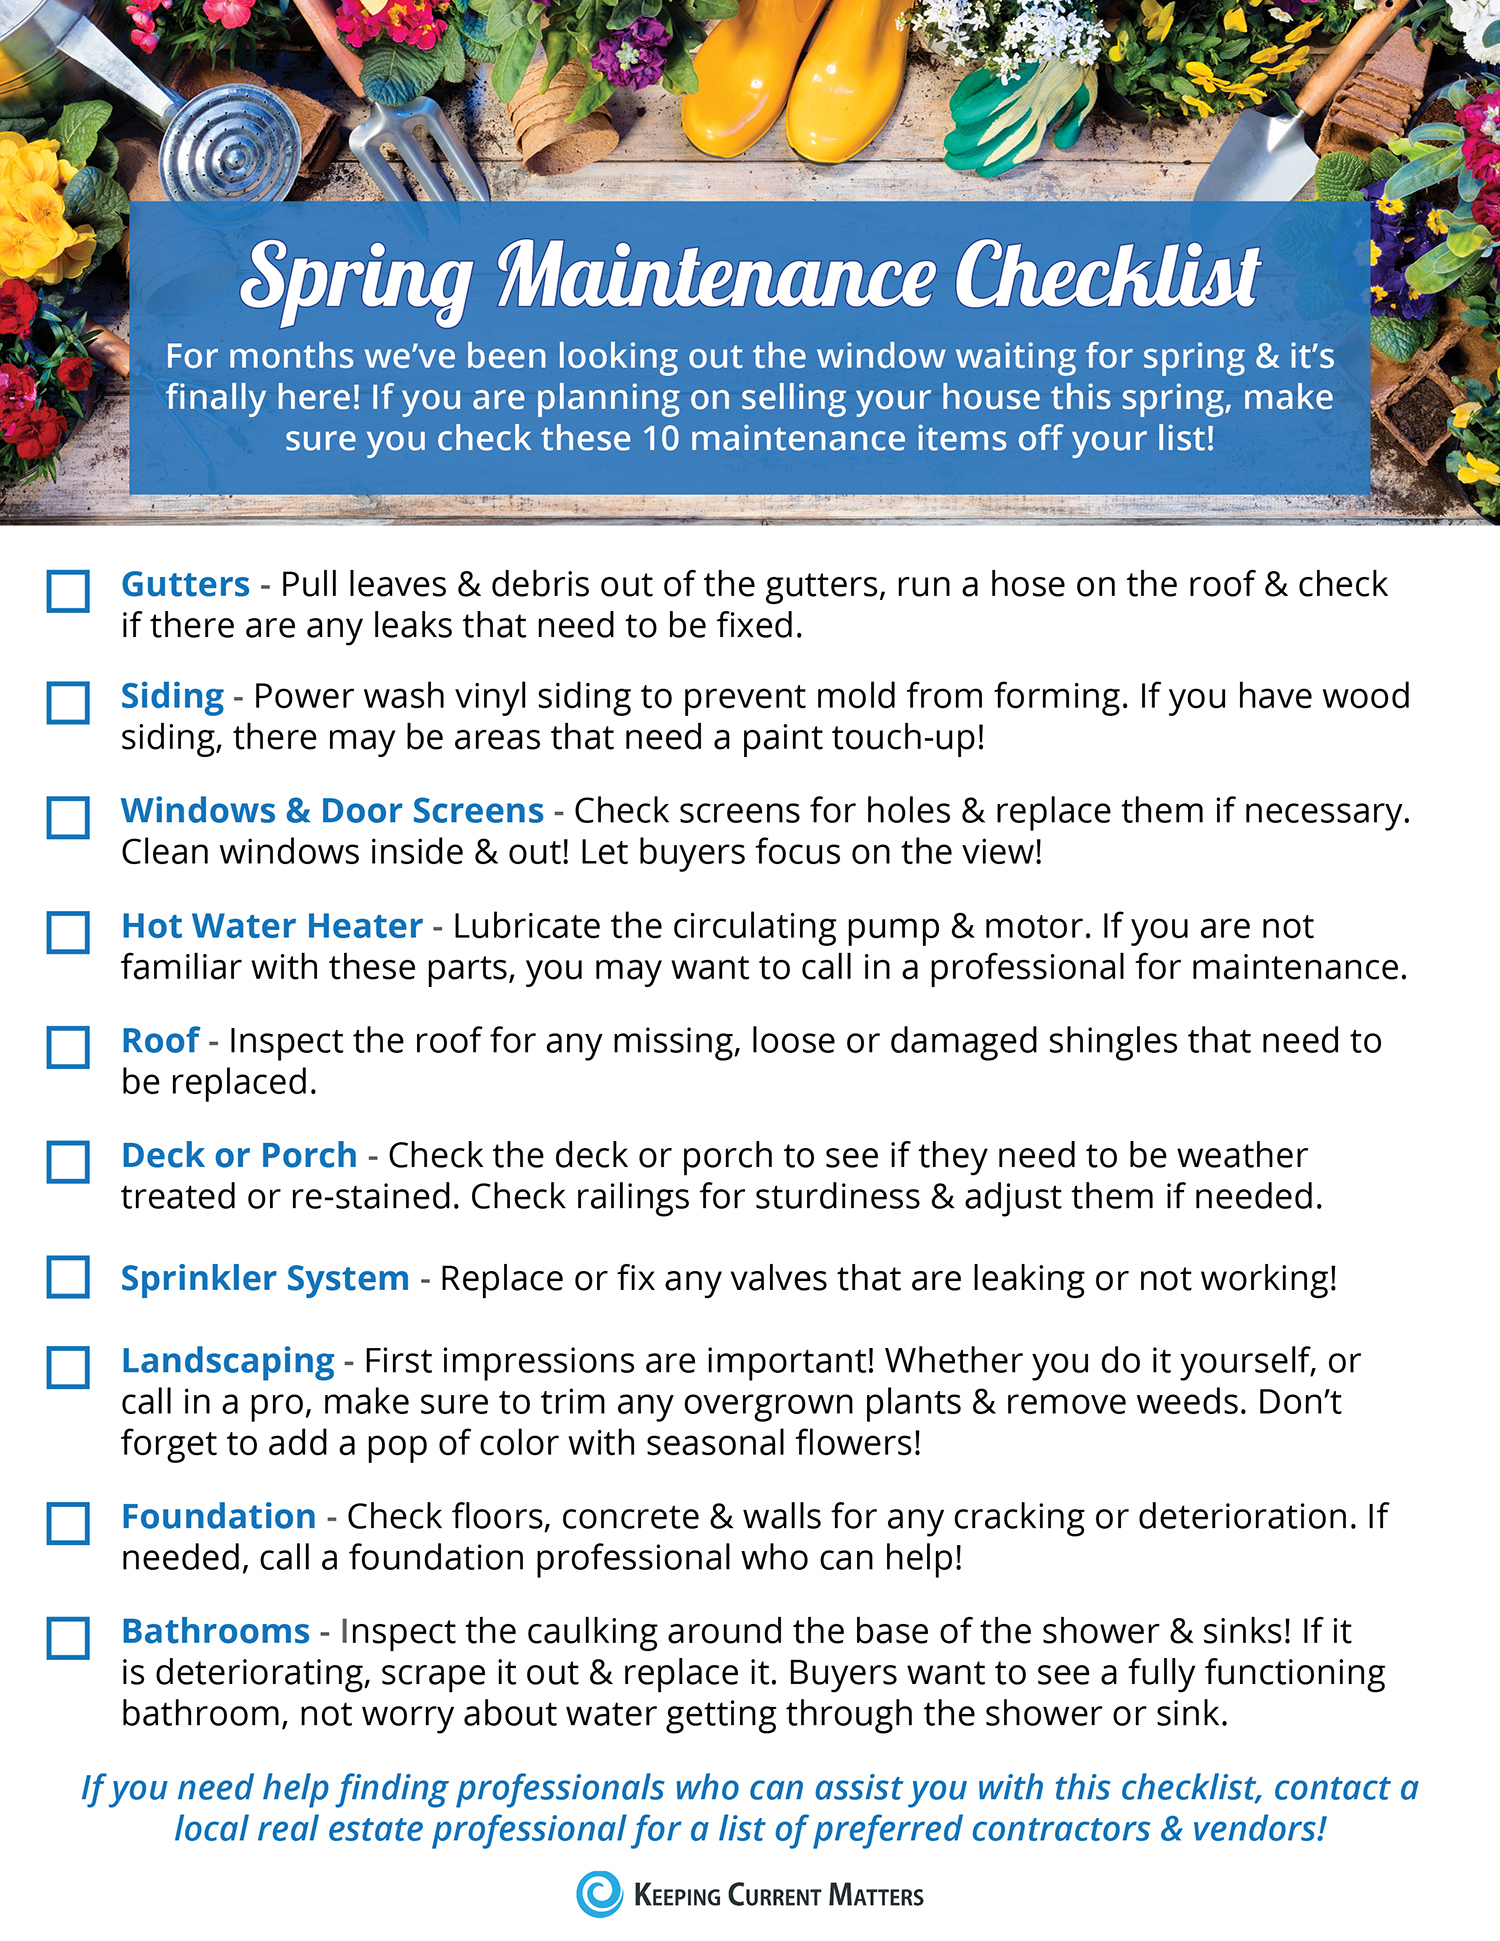 Your Home's Spring Maintenance Checklist [INFOGRAPHIC] | Keeping Current Matters